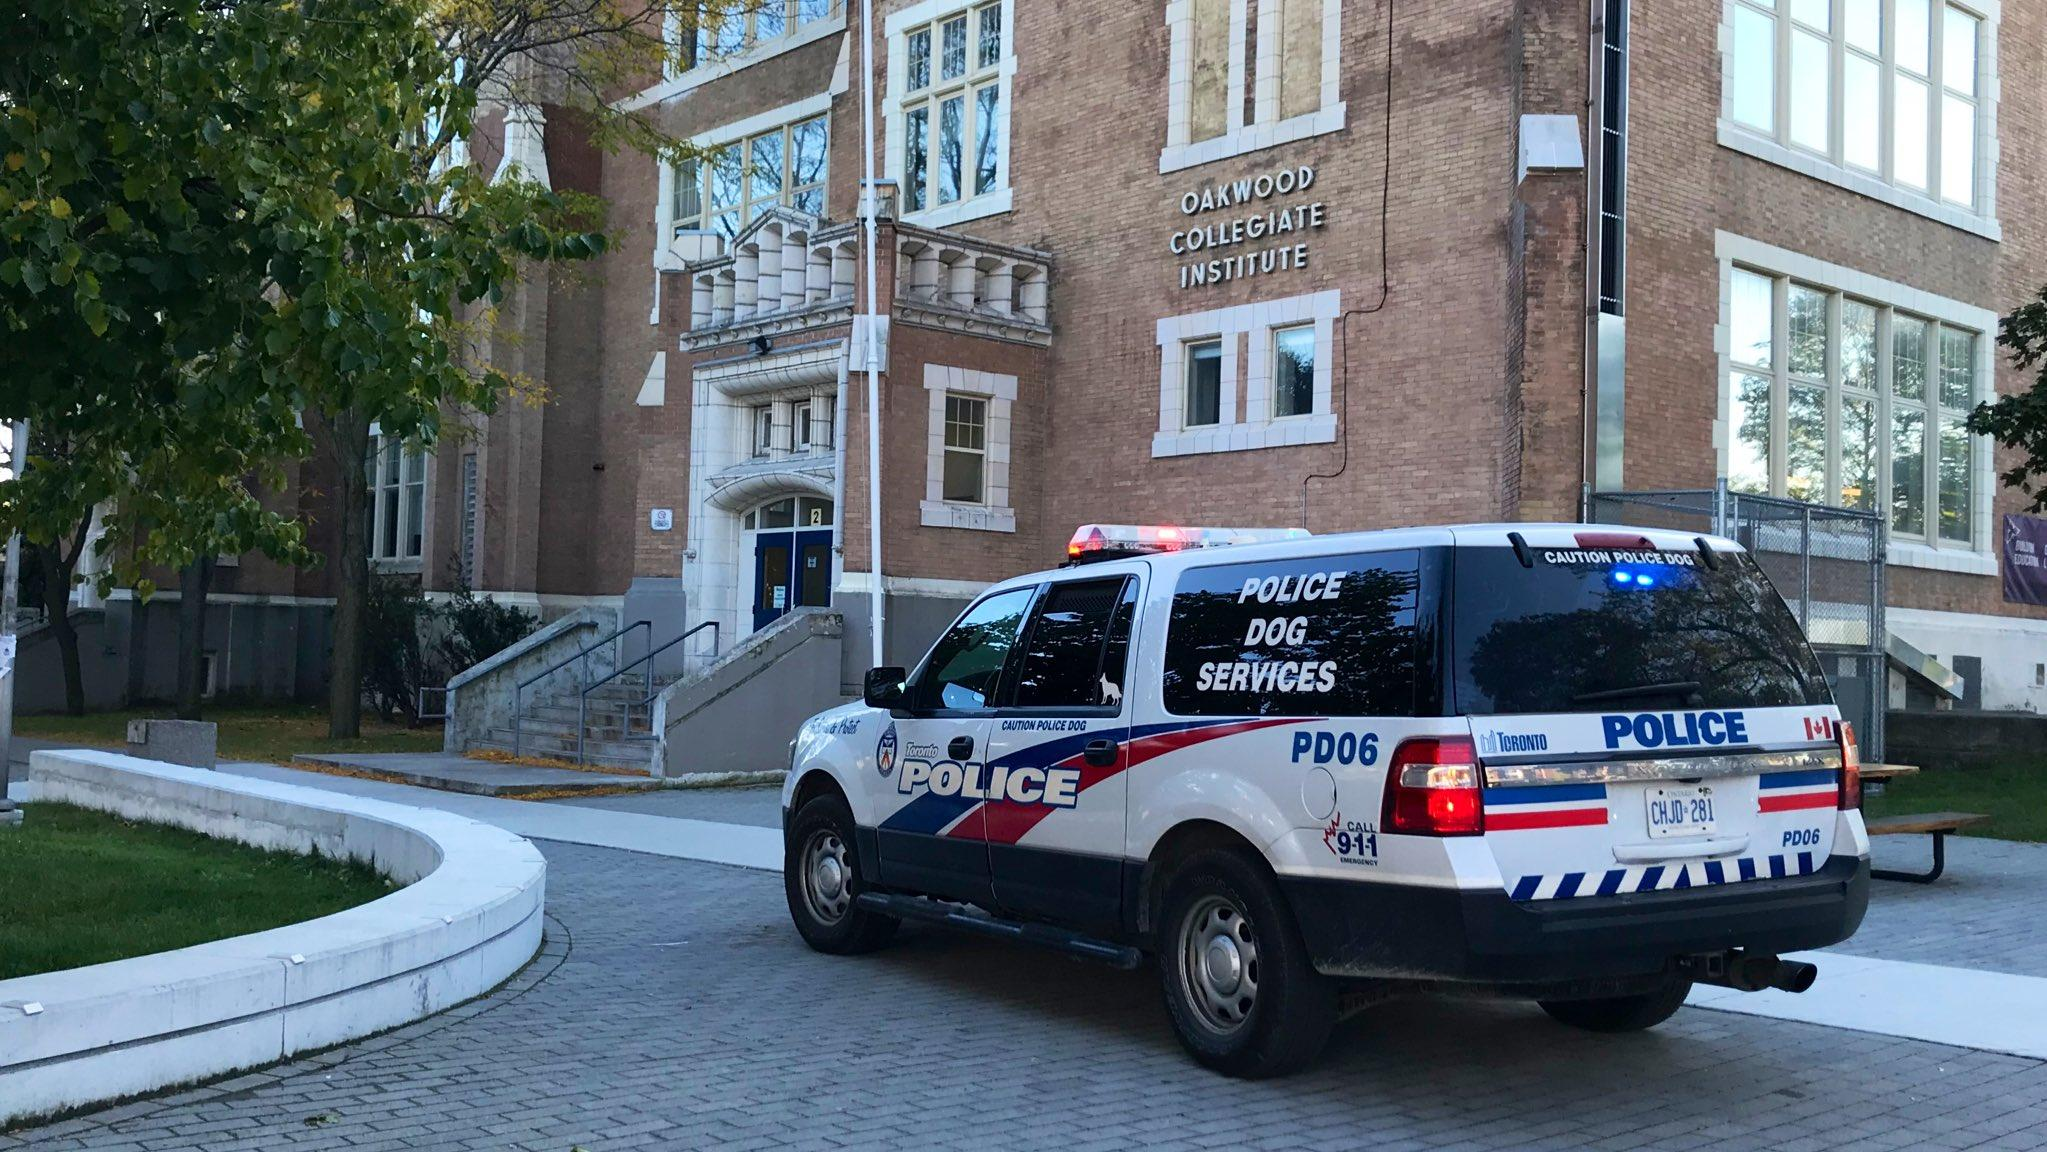 A police vehicle sits outside of Oakwood Collegiate